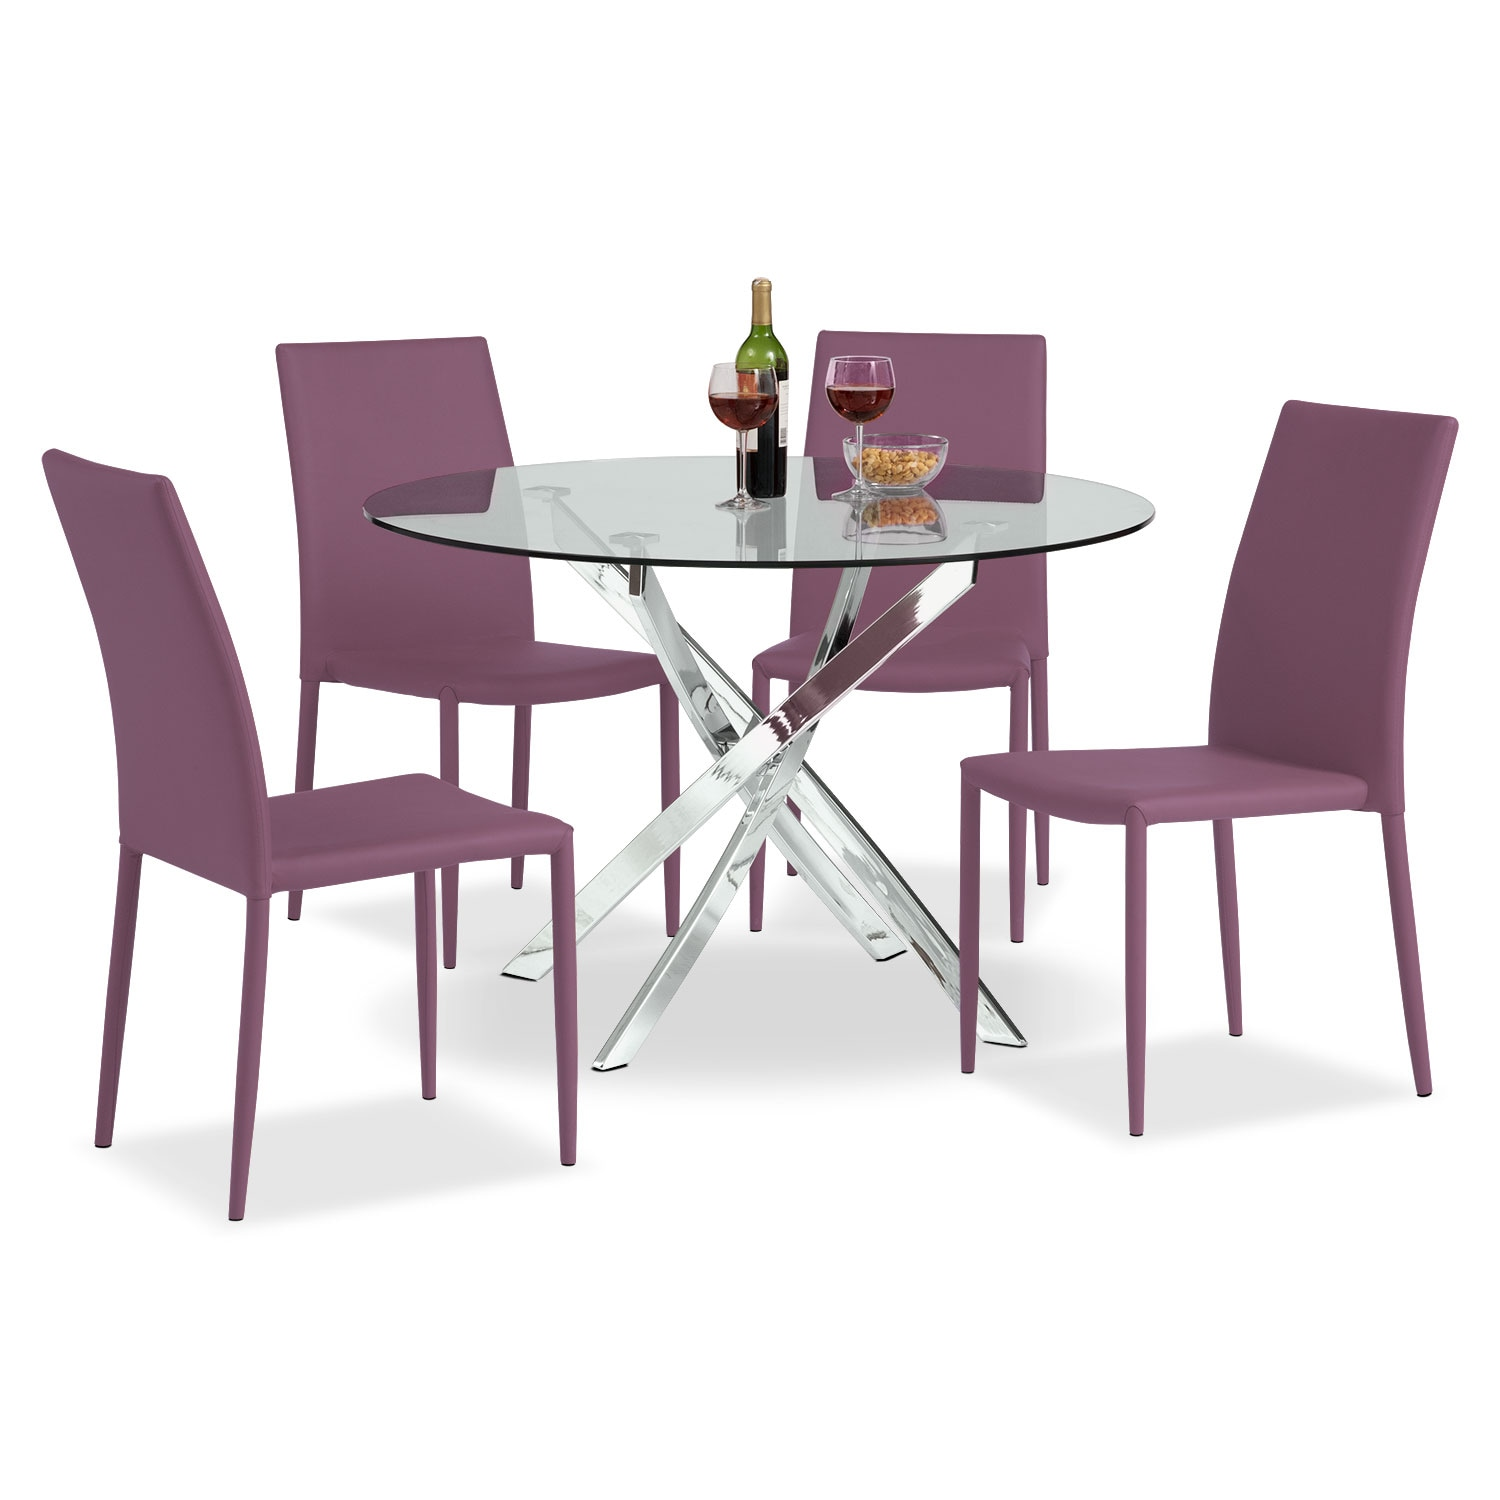 Quattro Table and 4 Chairs - Purple